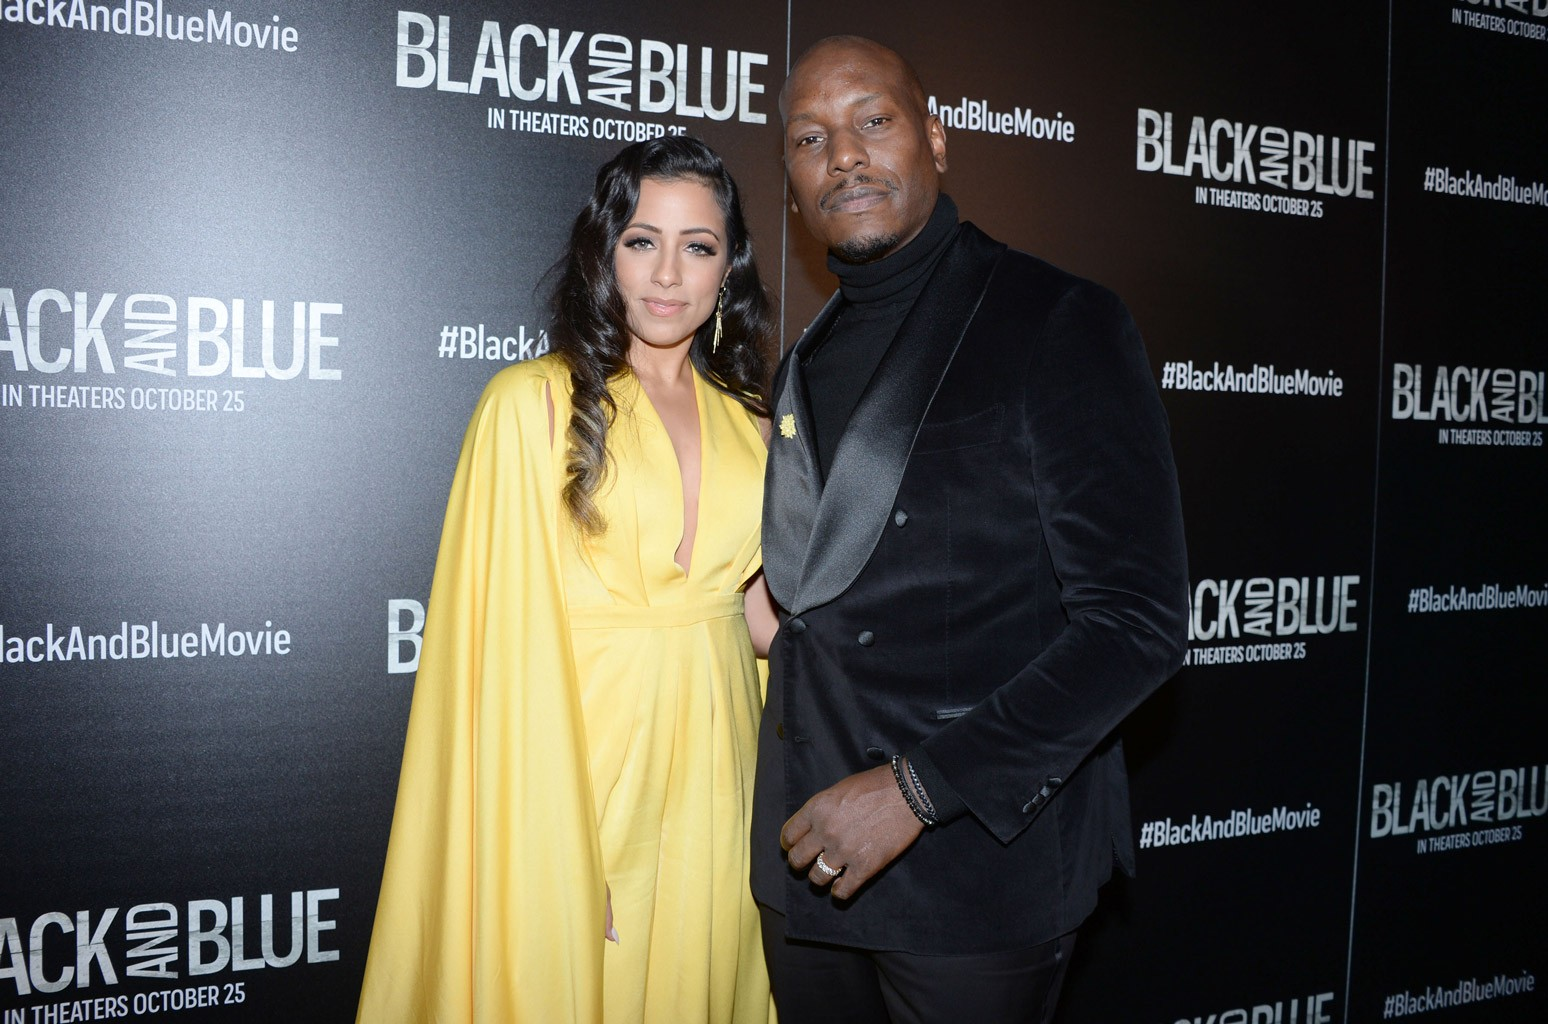 Samantha Gibson and Tyrese Gibson